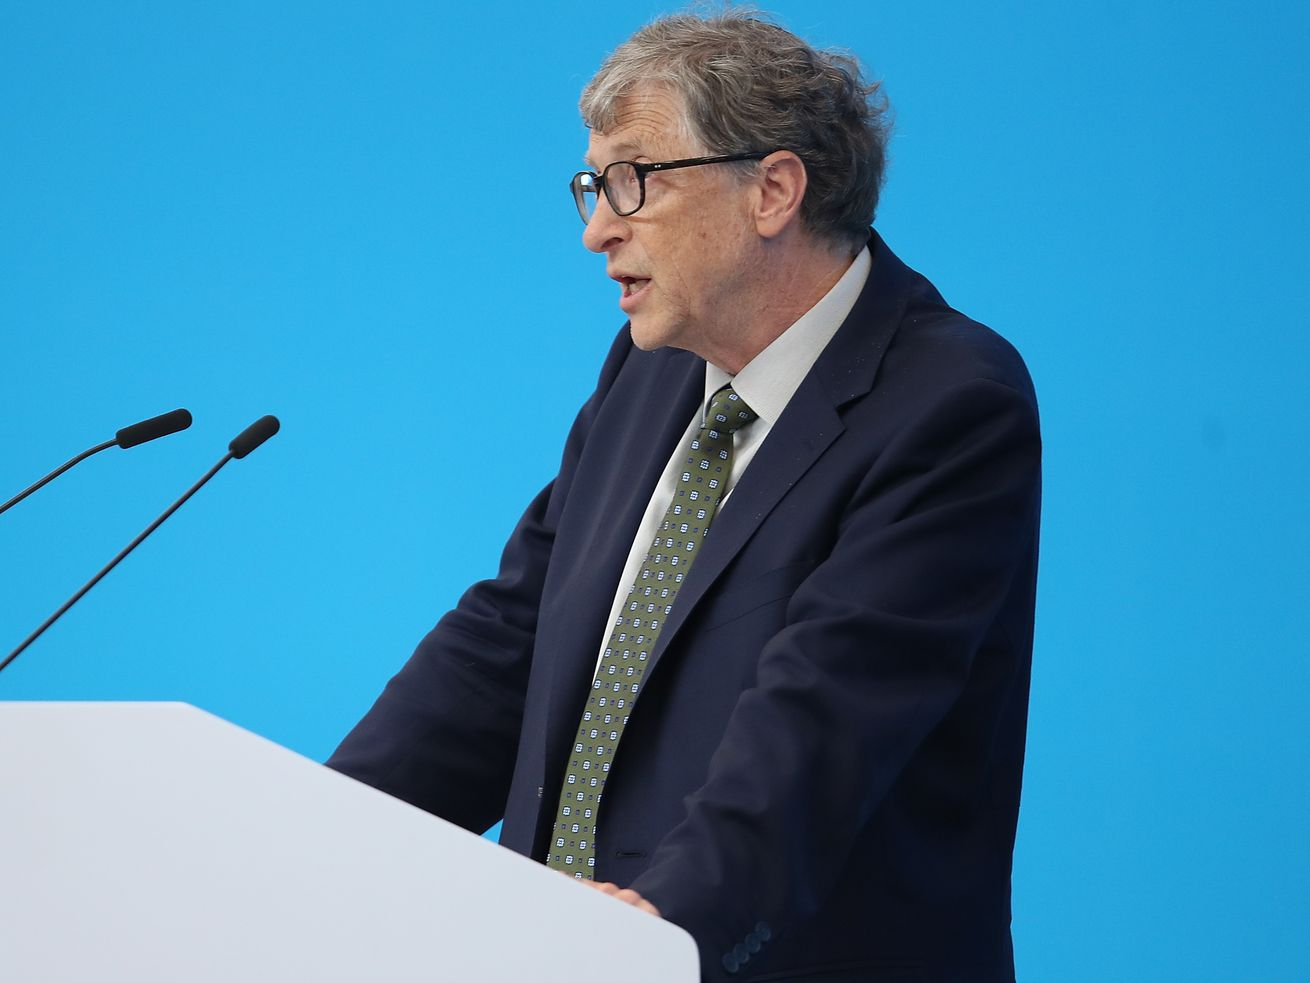 Bill Gates at a forum in Shanghai, China, in 2018.